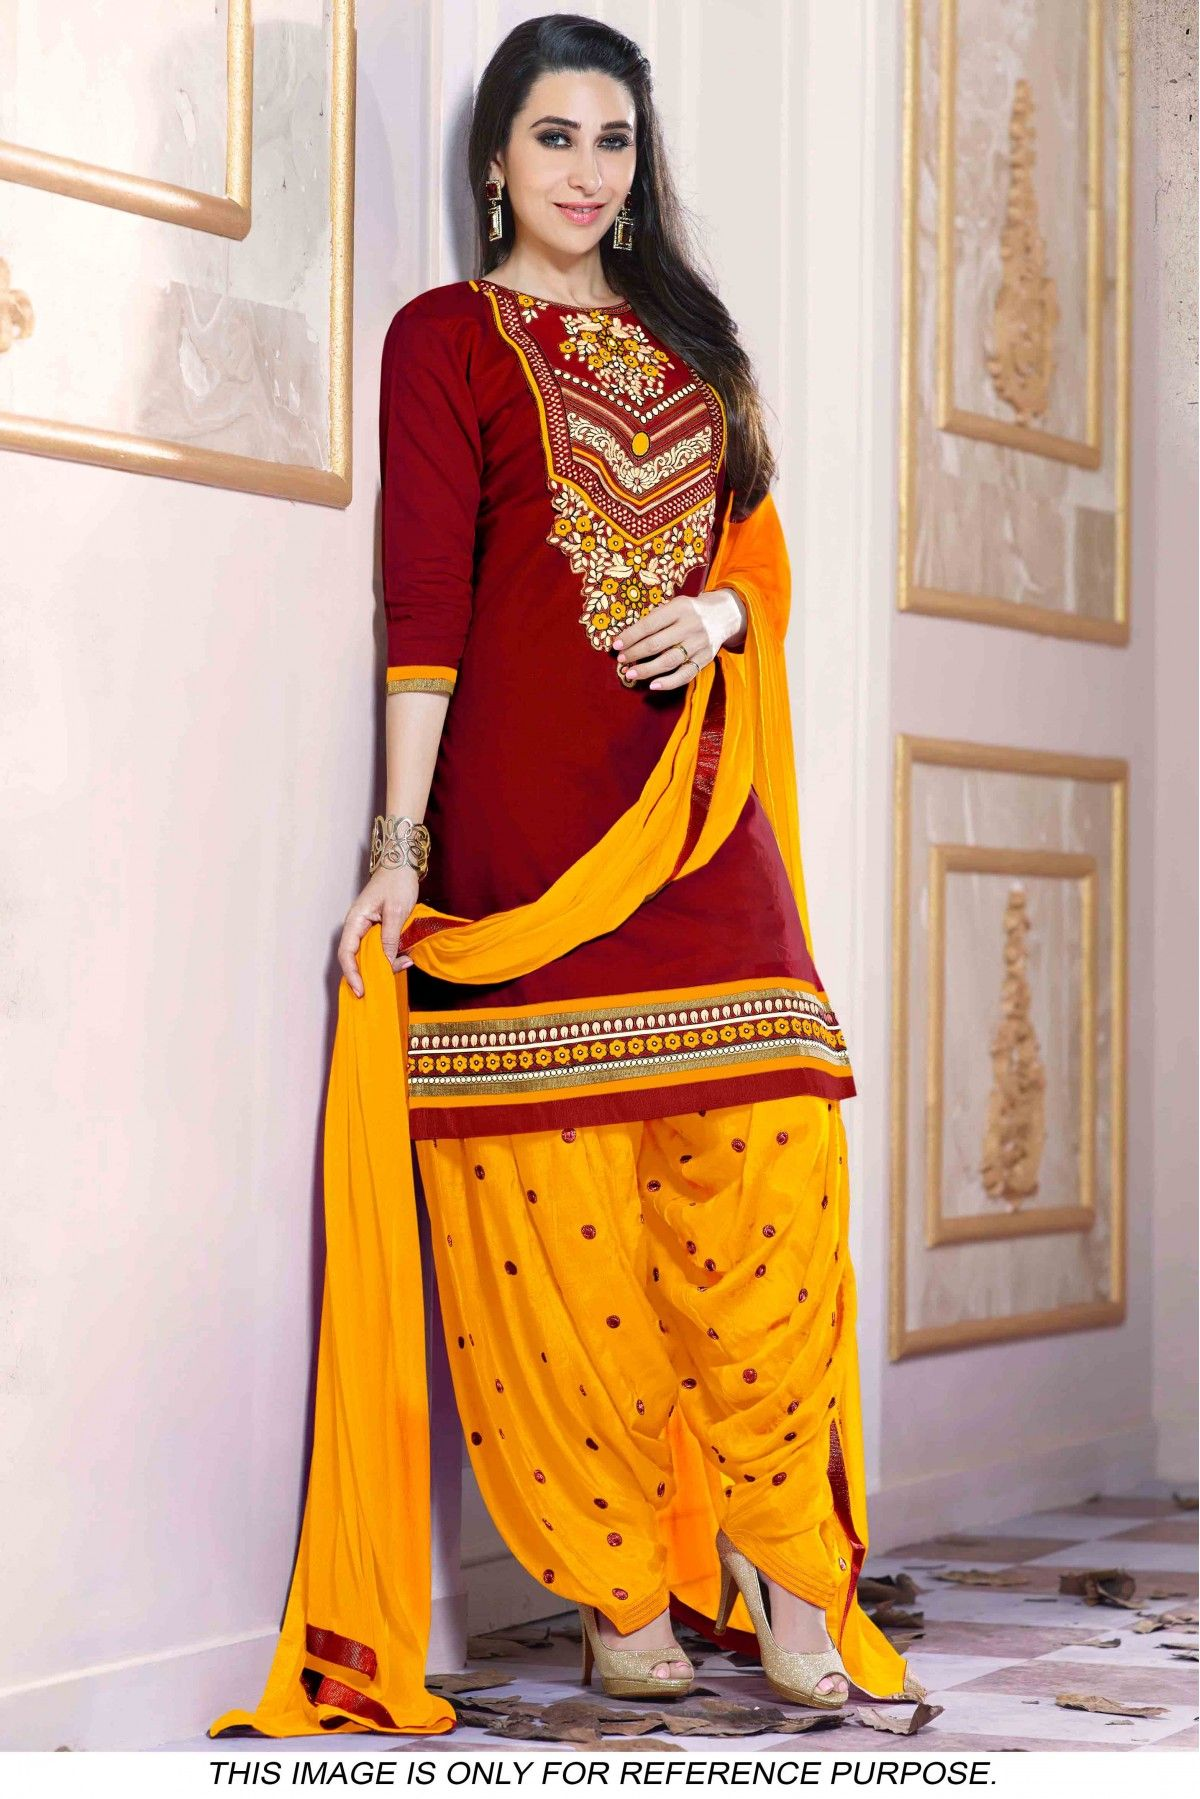 70fe30aa82 Bollywood style Karishma Kapoor Cotton Party Wear Patiala Suit in Maroon  And Yellow Colour .It Comes With Matching Dupatta And Bottom.